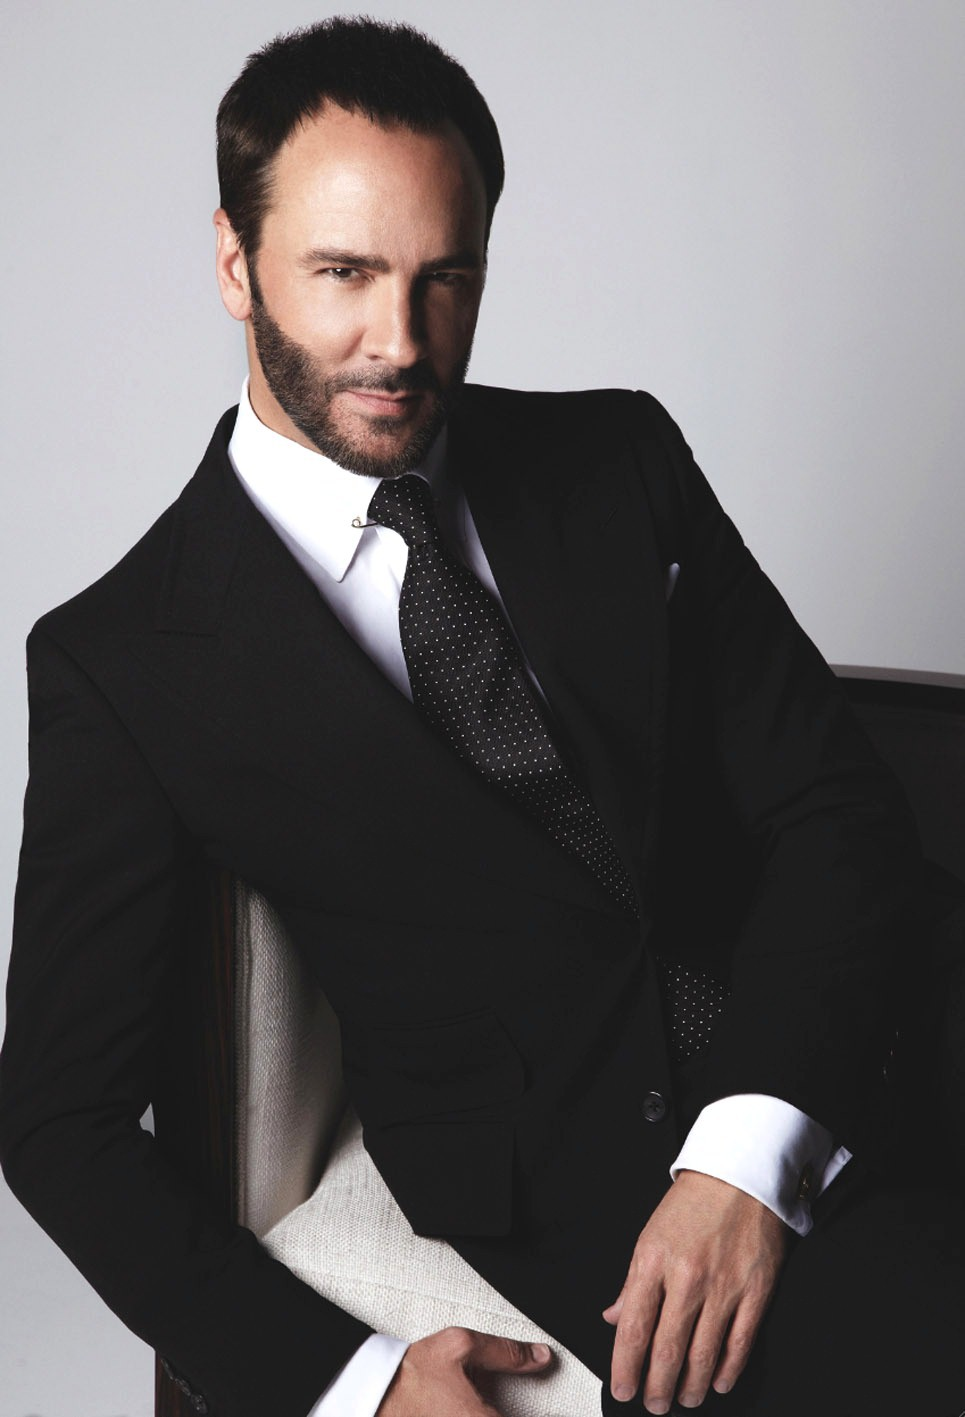 956405 Tom Ford Wallpapers 965x1417